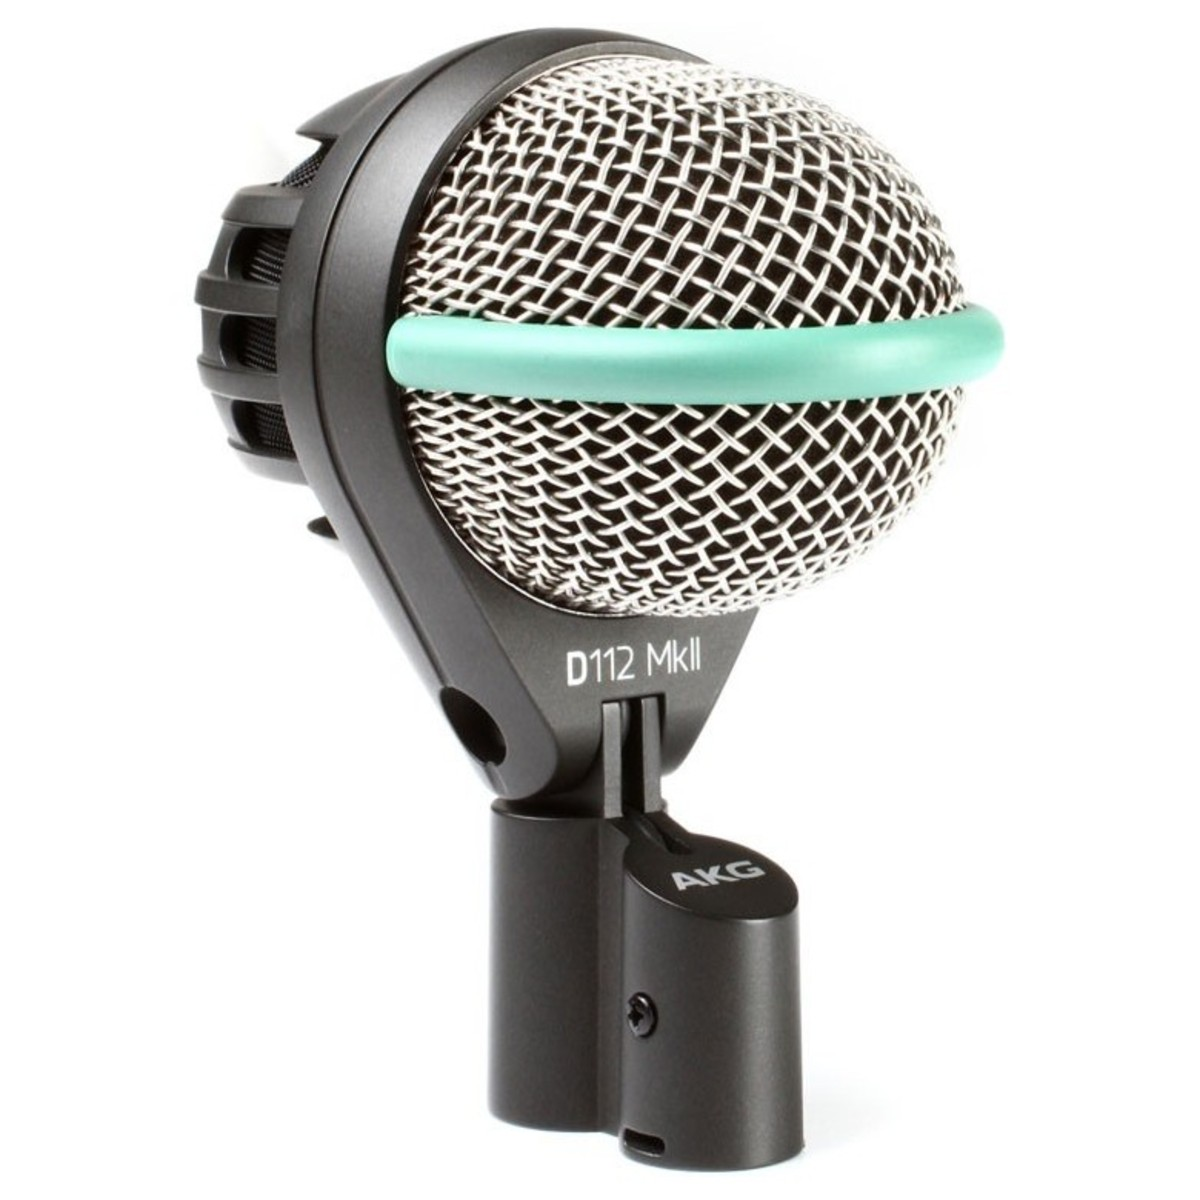 akg d112 mkii kick drum microphone with flexible mount at gear4music. Black Bedroom Furniture Sets. Home Design Ideas